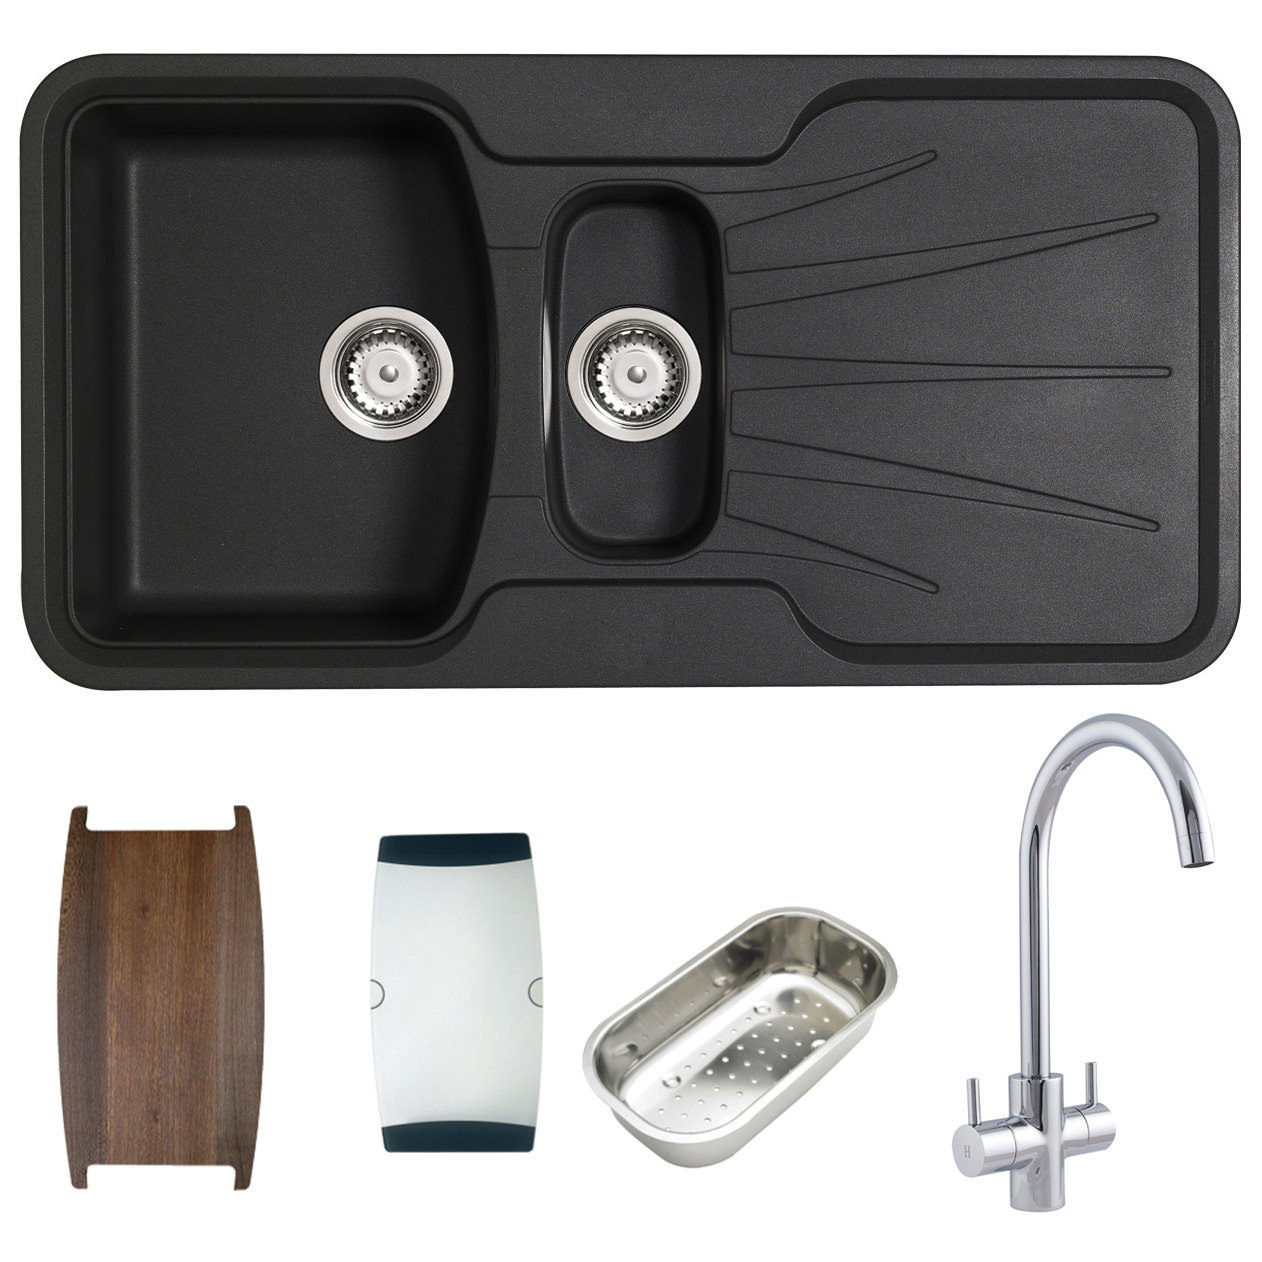 Astracast Korona 1.5 Bowl Composite ROK Metallic Inset Sink And Tap Pack